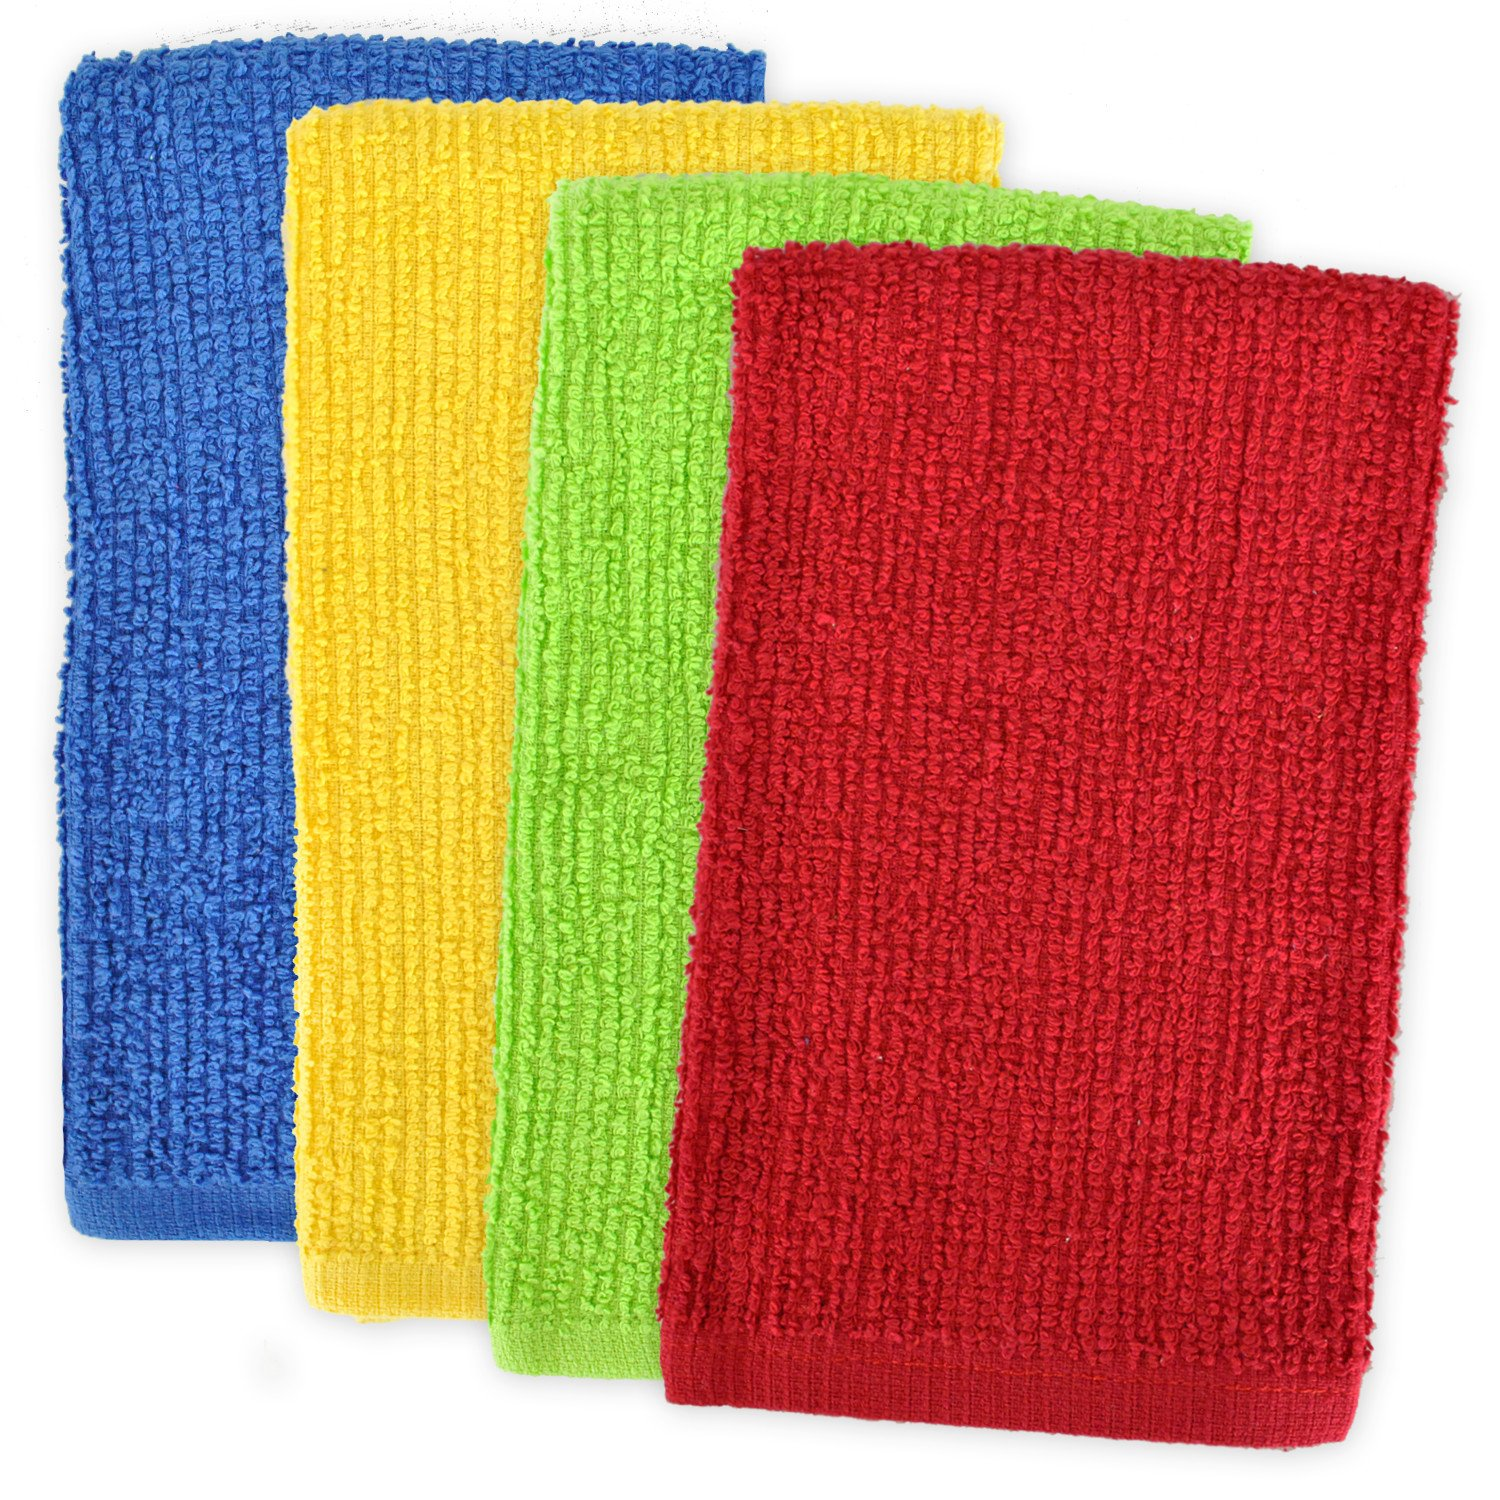 DII 100% Cotton, Machine Washable, Ultra Absorbent, Everyday Kitchen Basic, Utility, Bar Mop Dishtowel 16 x 19 Set of 4- Primary